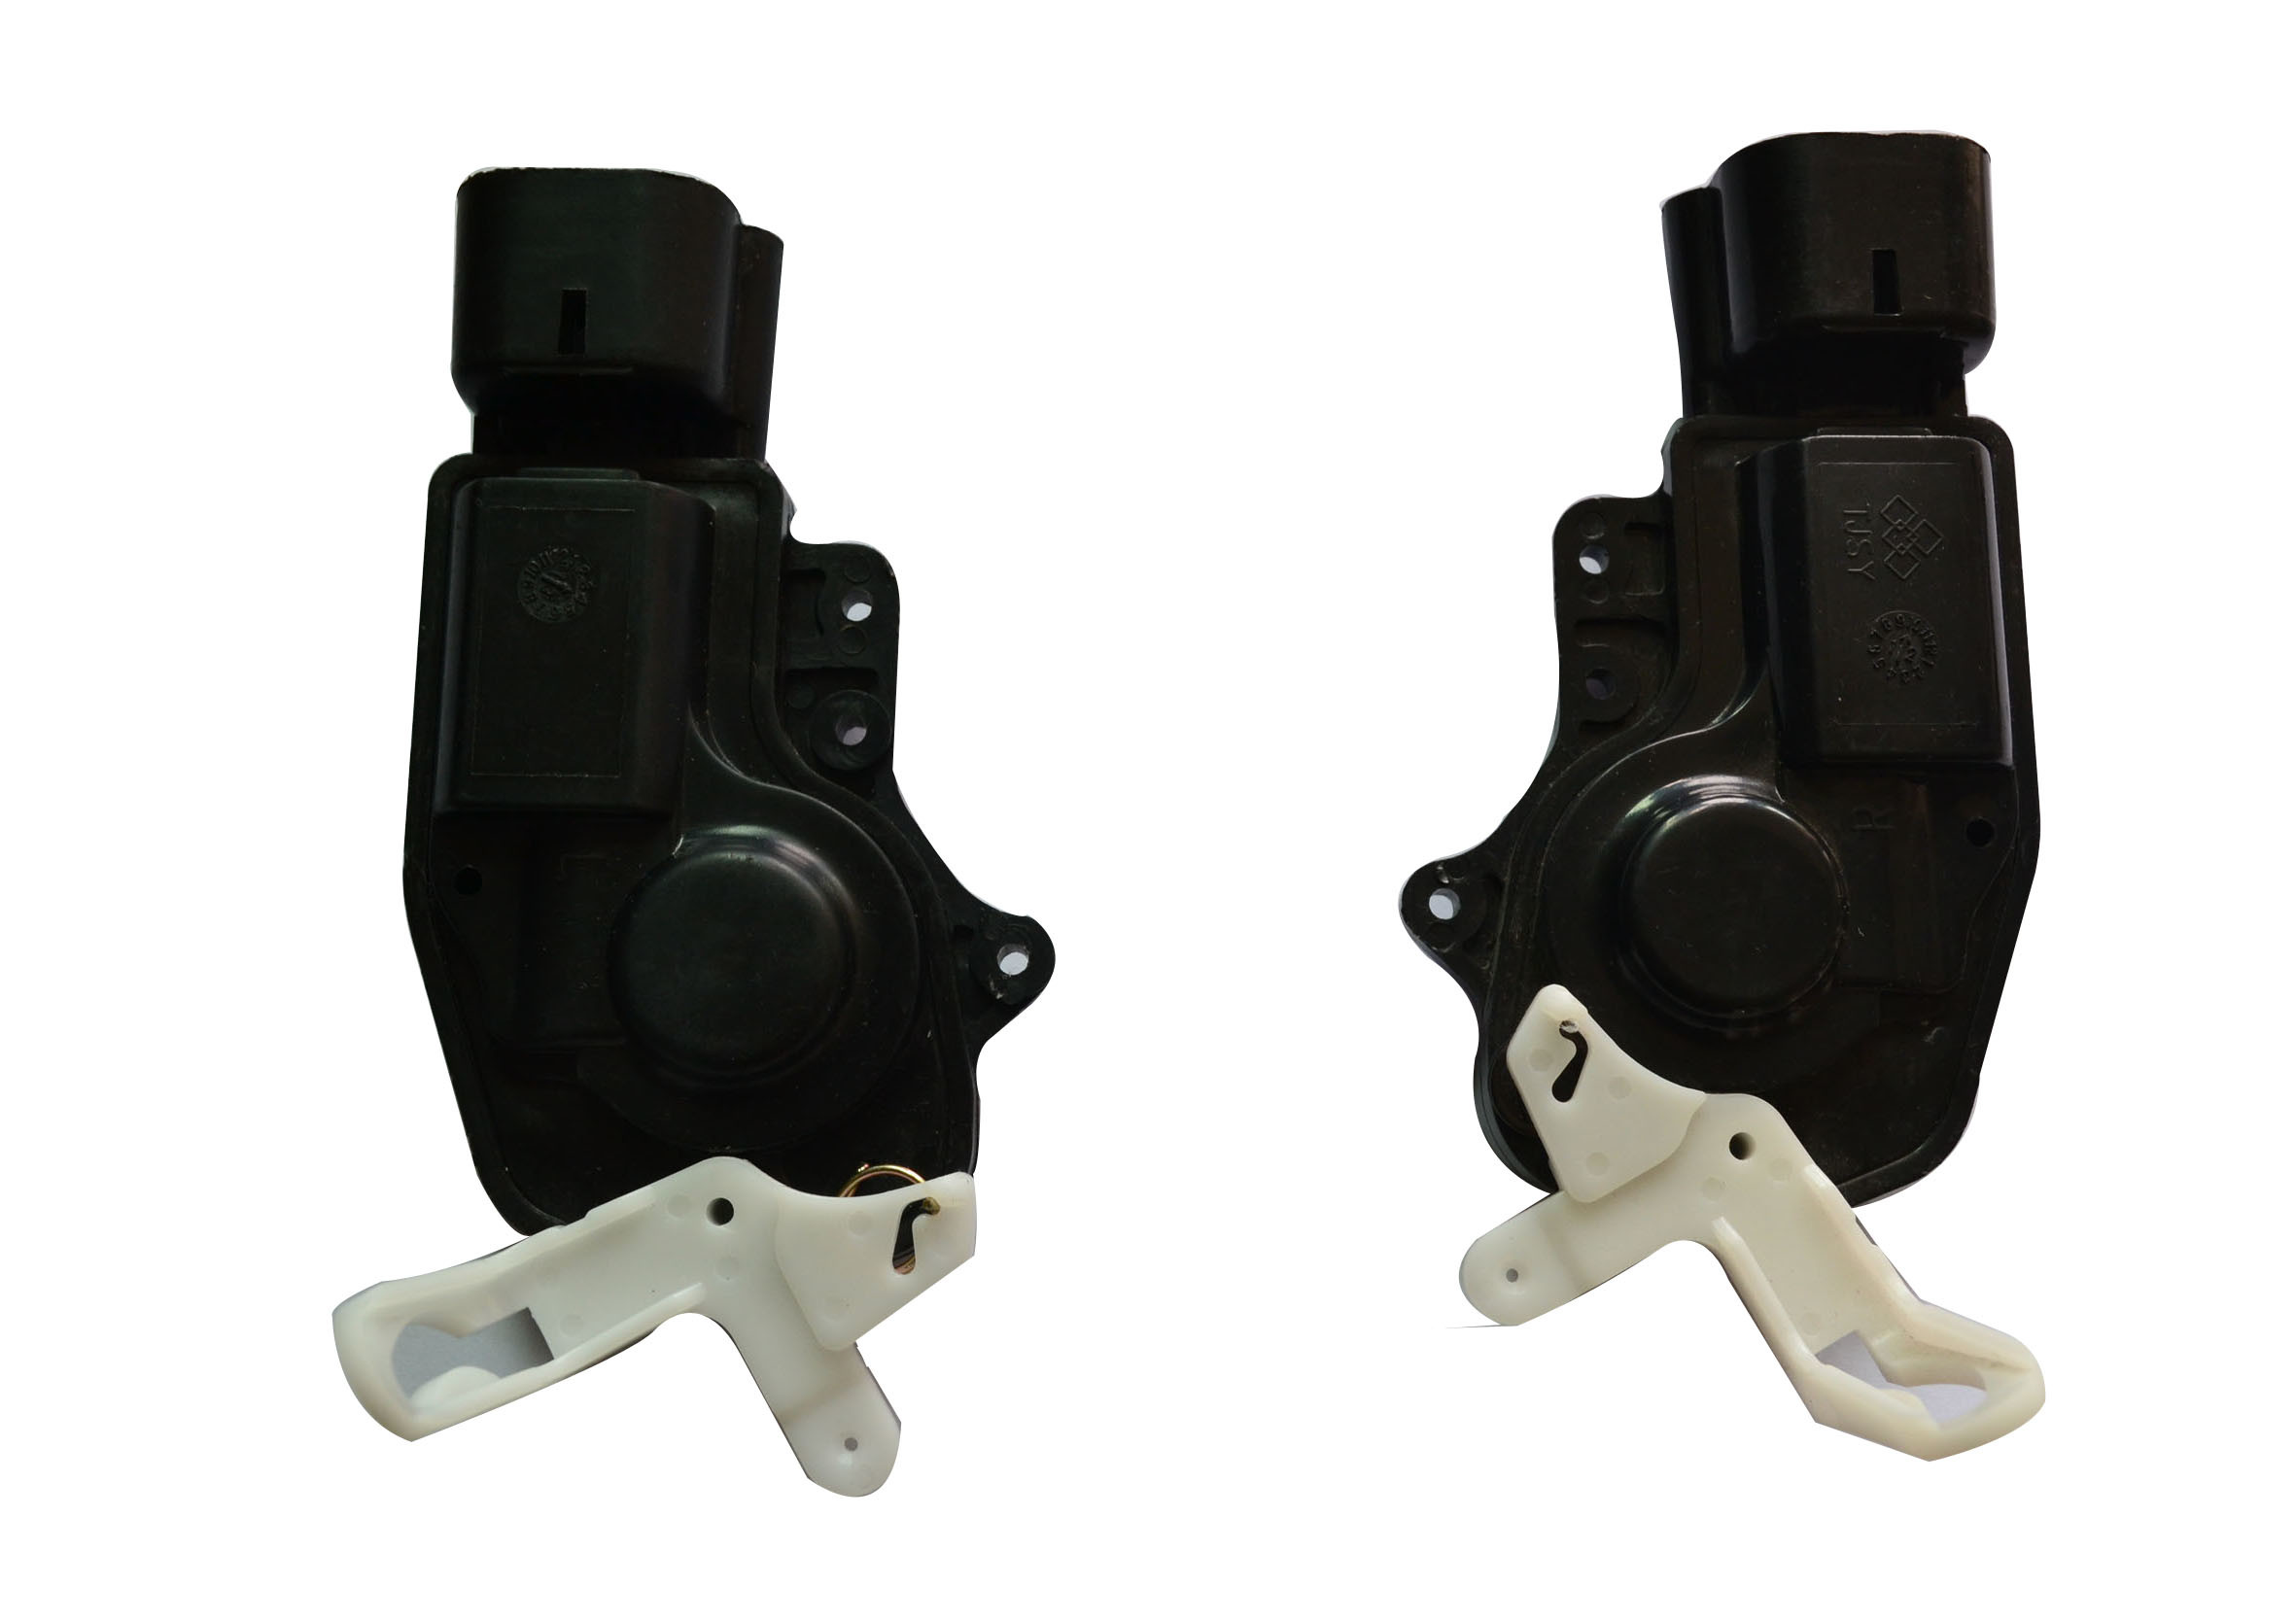 Auto Car Door Lock/Lock Set for Toyota/Vw/Zotye Cars